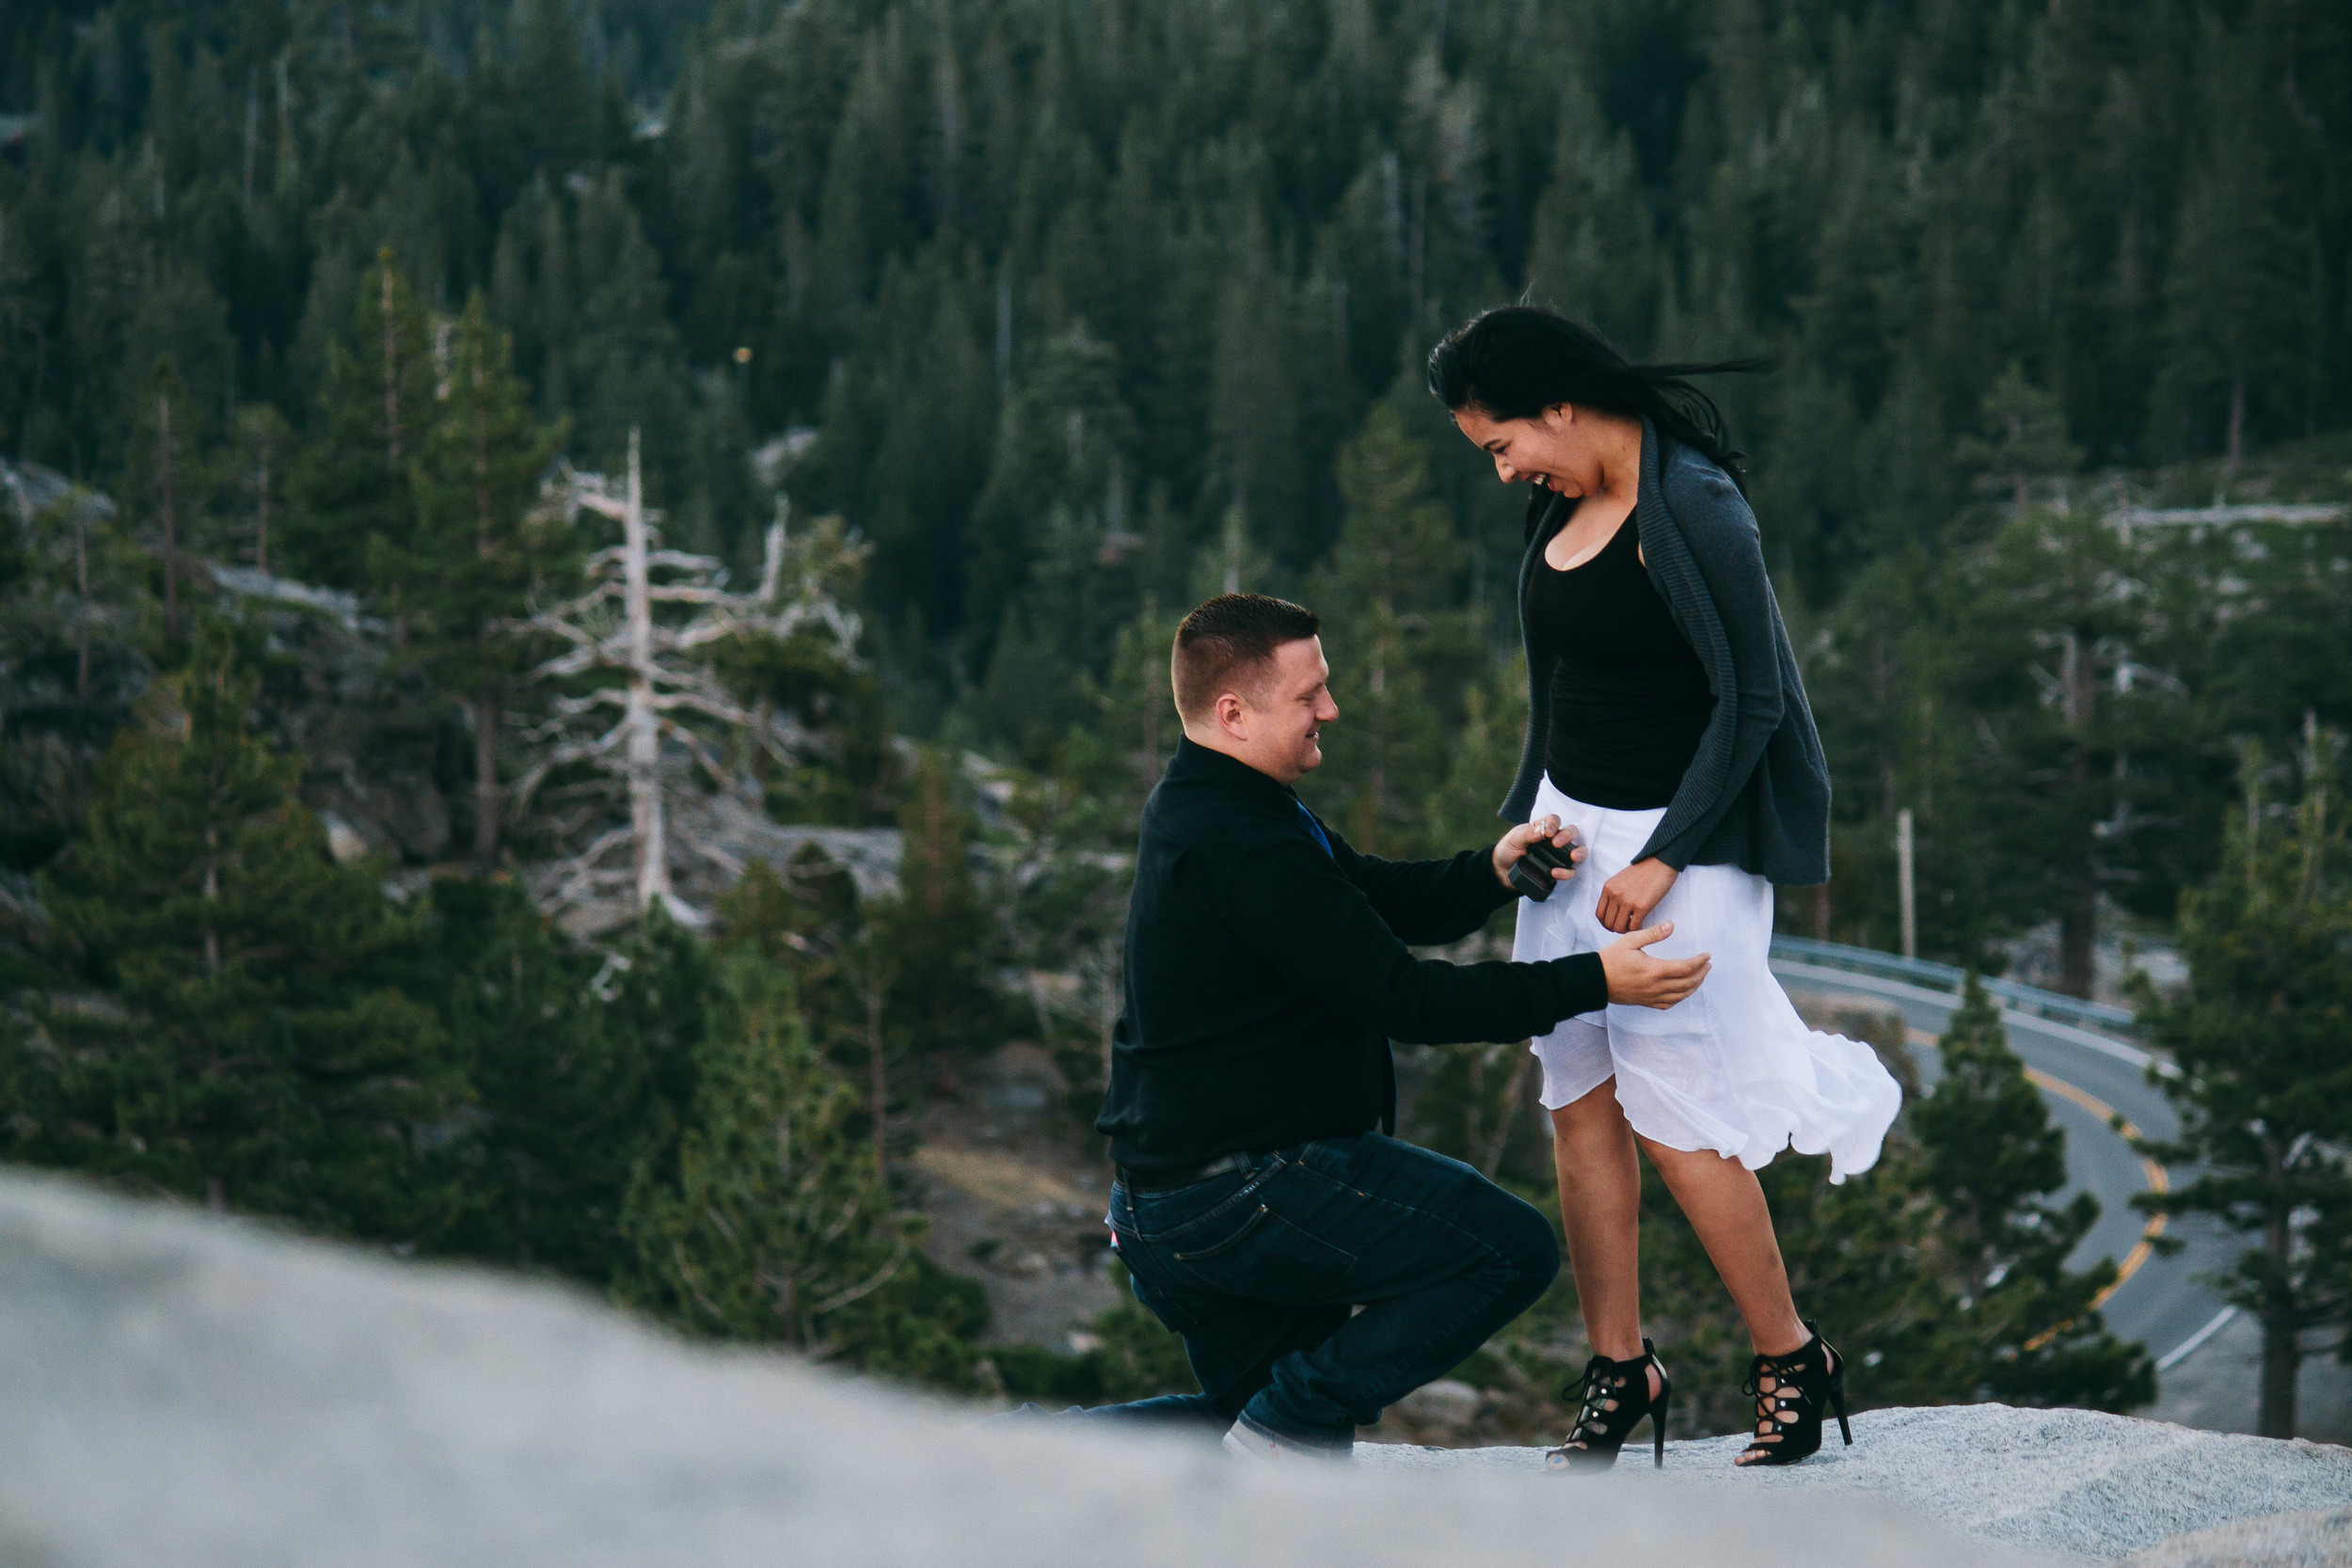 Clint & Veronica's Proposal - Corrie Mick Photography-16.jpg